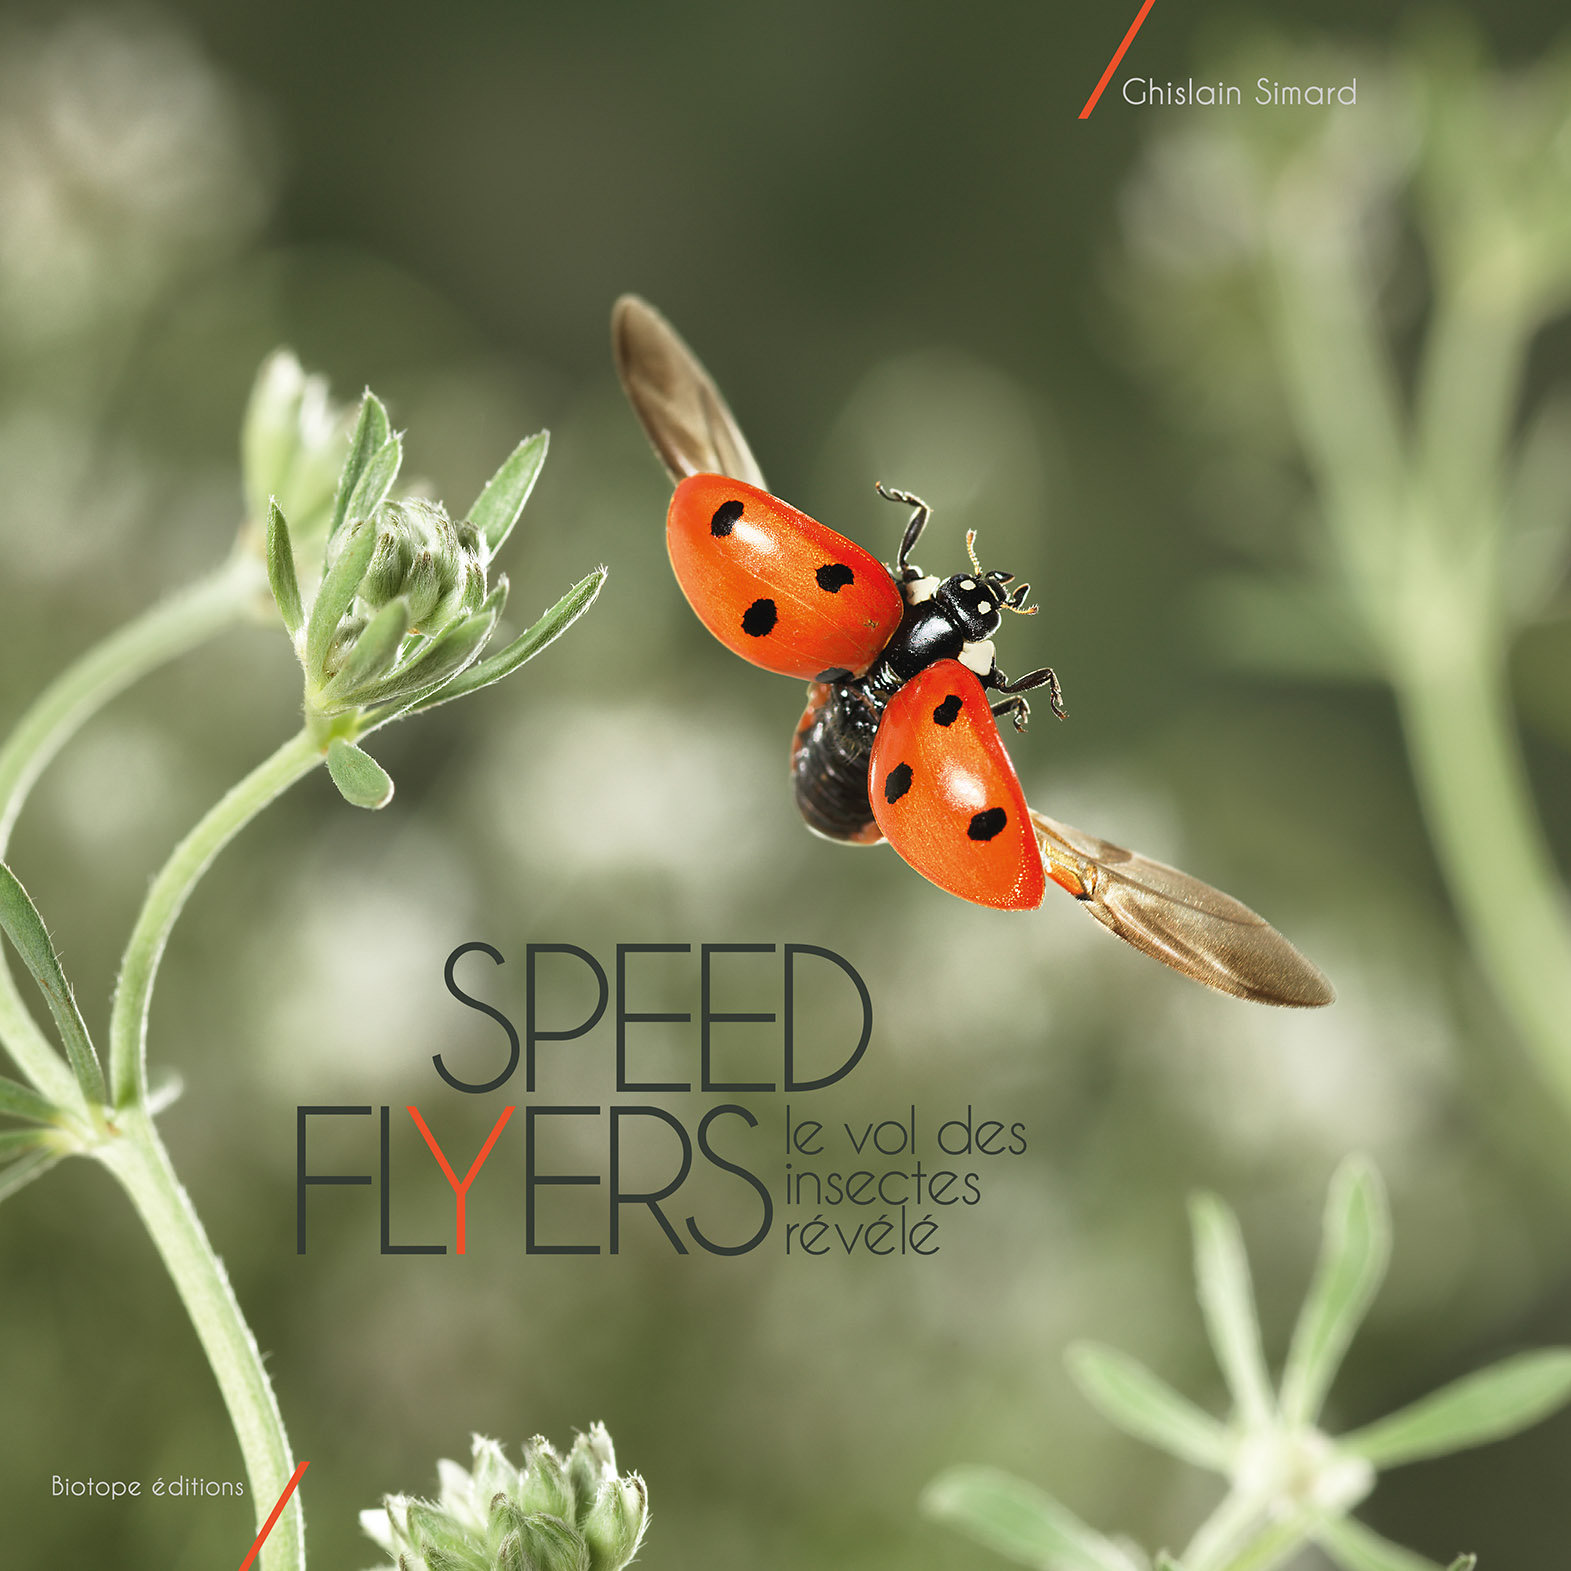 http://www.photo-montier.org/wp-content/uploads/exposants/publications/2016/94_speed-flyers-le-vol-des-insectes-revele.jpg